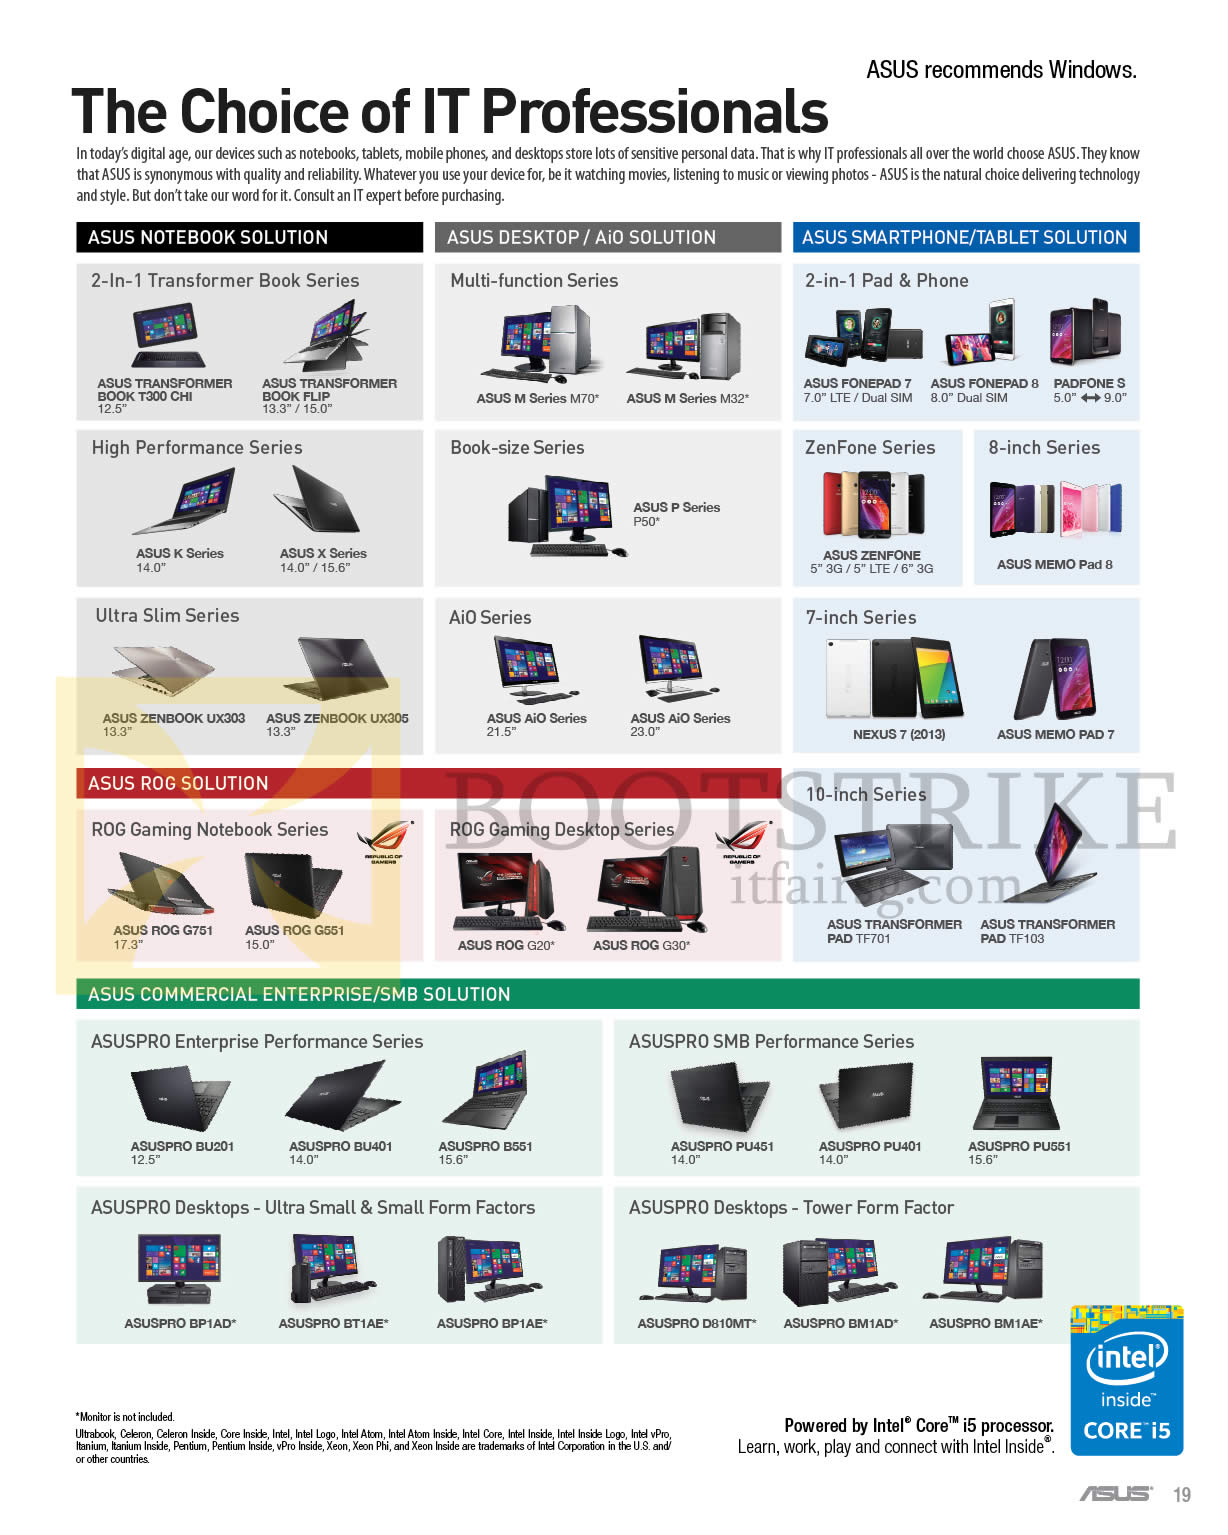 how to find prices on asus products